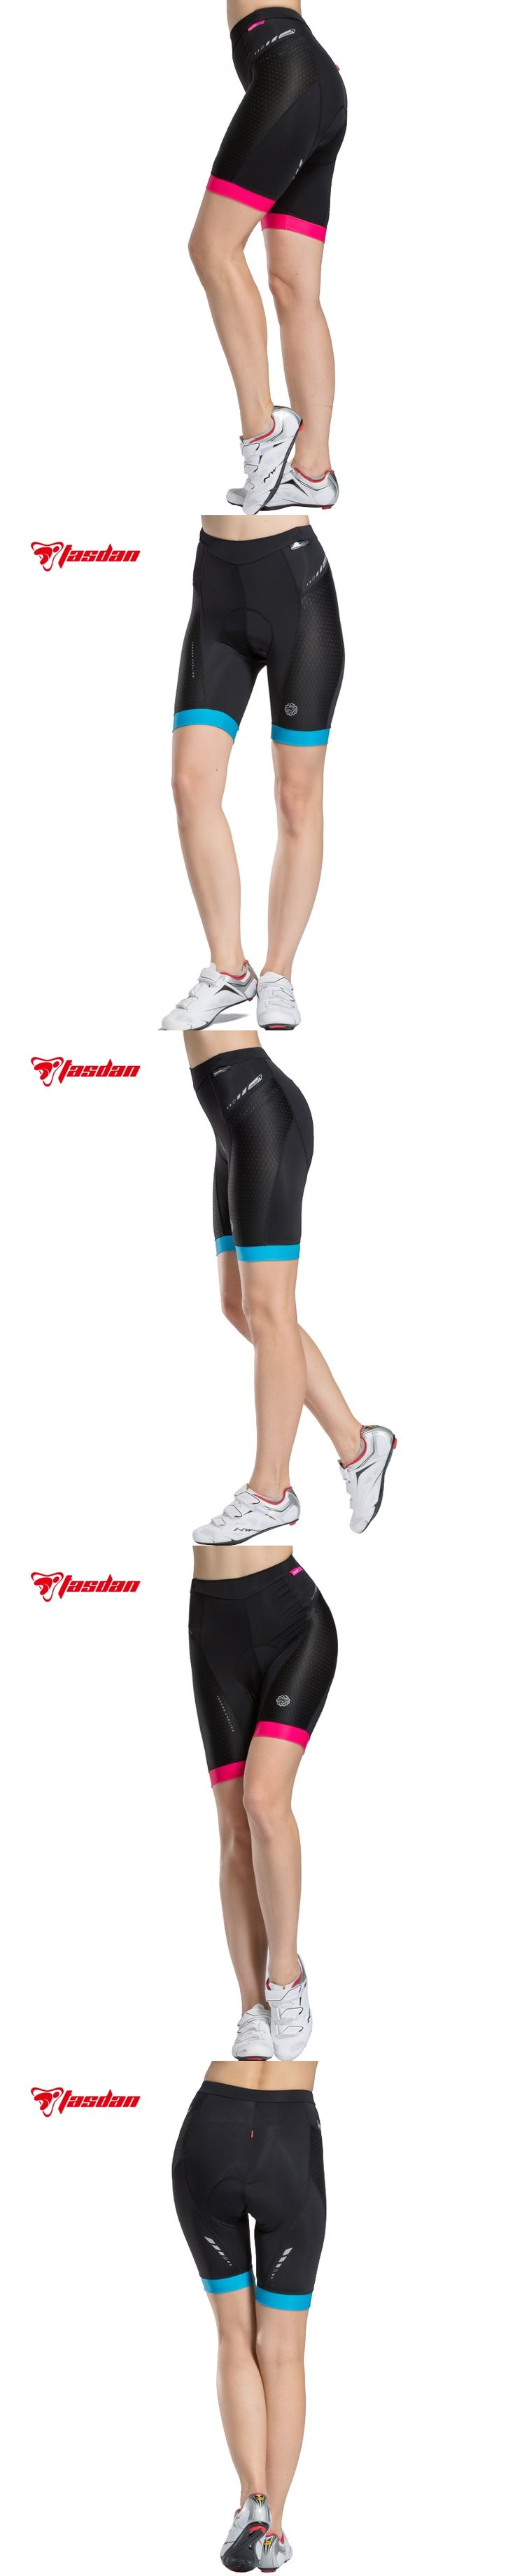 Tasdan Cycling Wear Cycling Clothing Cycling Clothes Bike Shorts Women's 2016 Cycling Shorts With 3d Coolmax Gel Pad